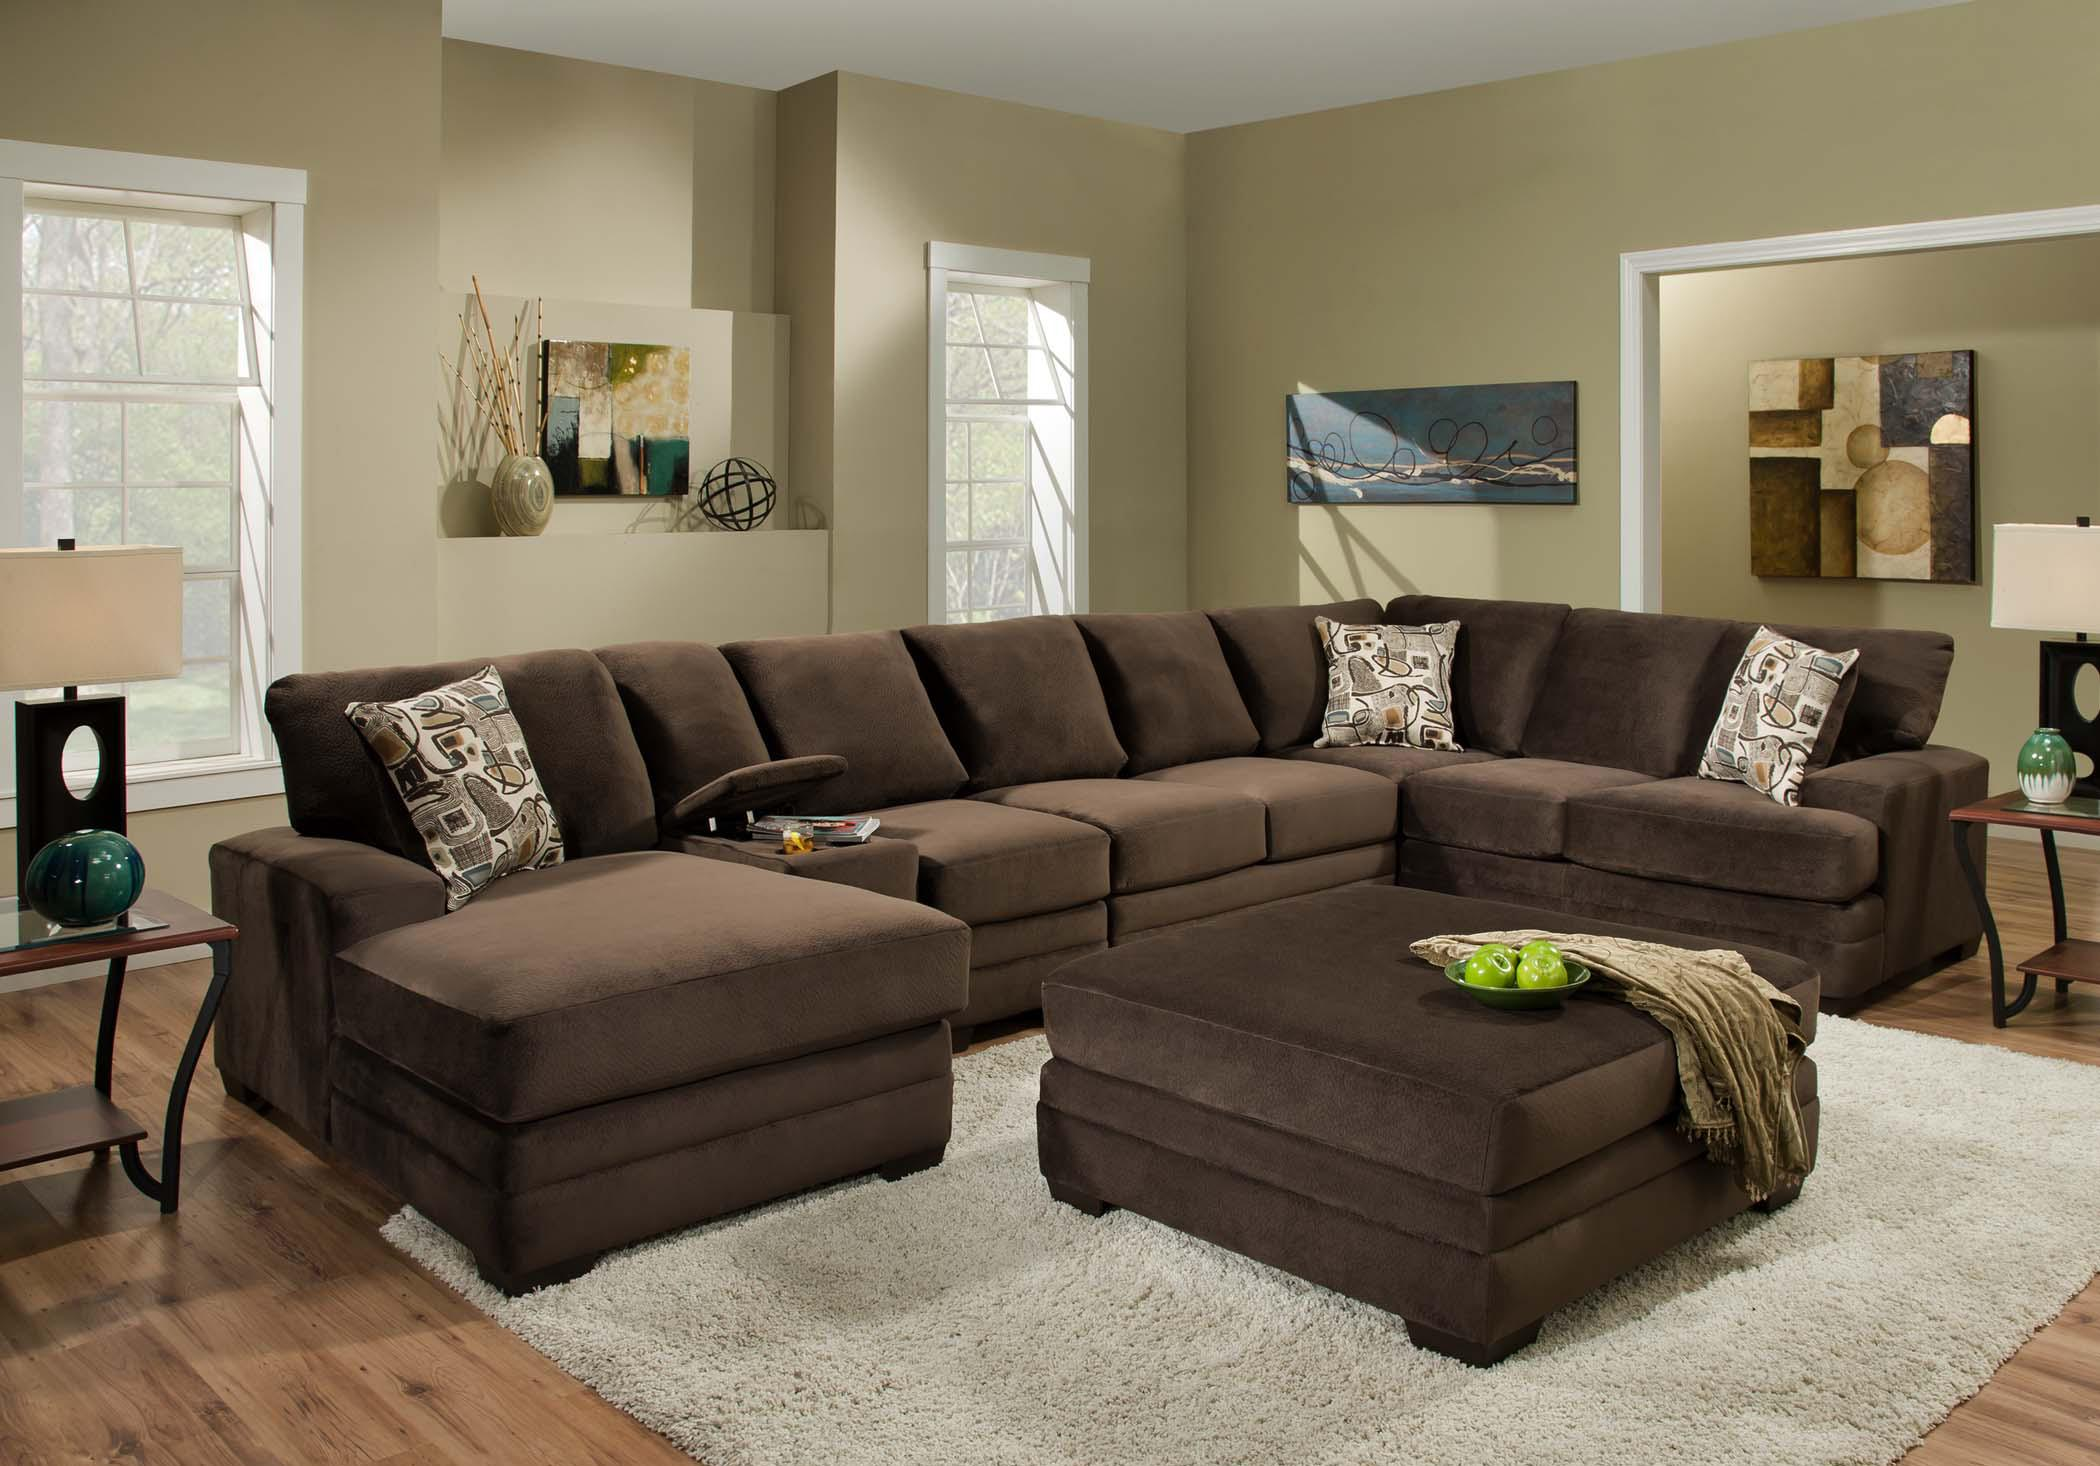 American furniture 3500 contemporary sectional sofa with 6 for Furnishing america